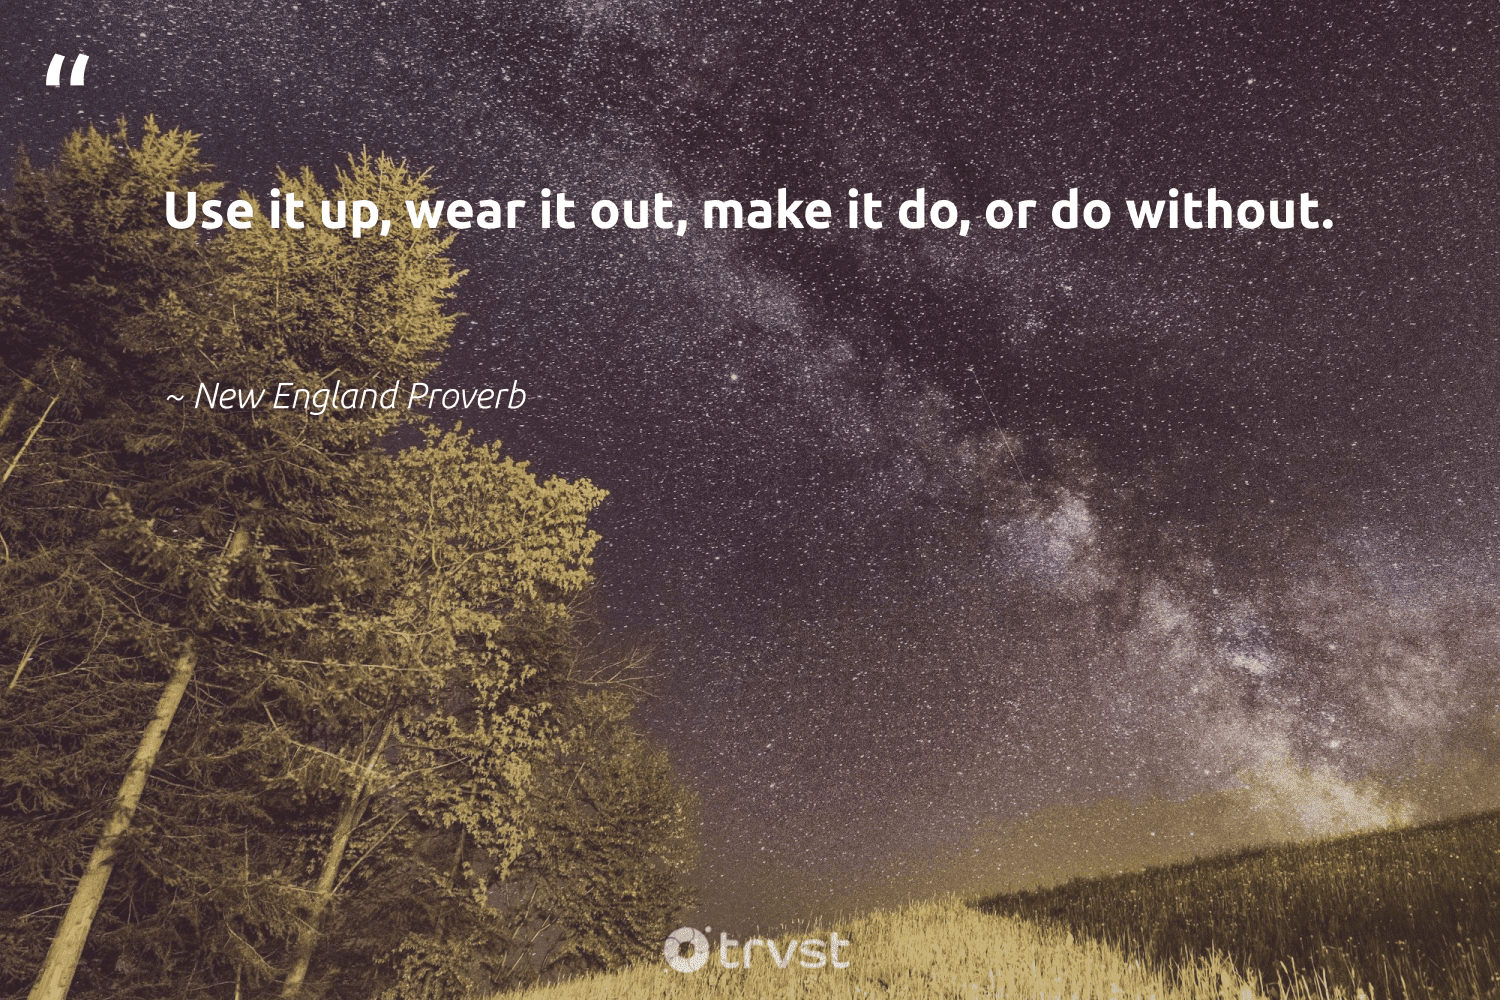 """""""Use it up, wear it out, make it do, or do without.""""  - New England Proverb #trvst #quotes #takeaction #impact #dogood #ecoconscious #greenliving #thinkgreen #wastefree #beinspired #changetheworld #gogreen"""